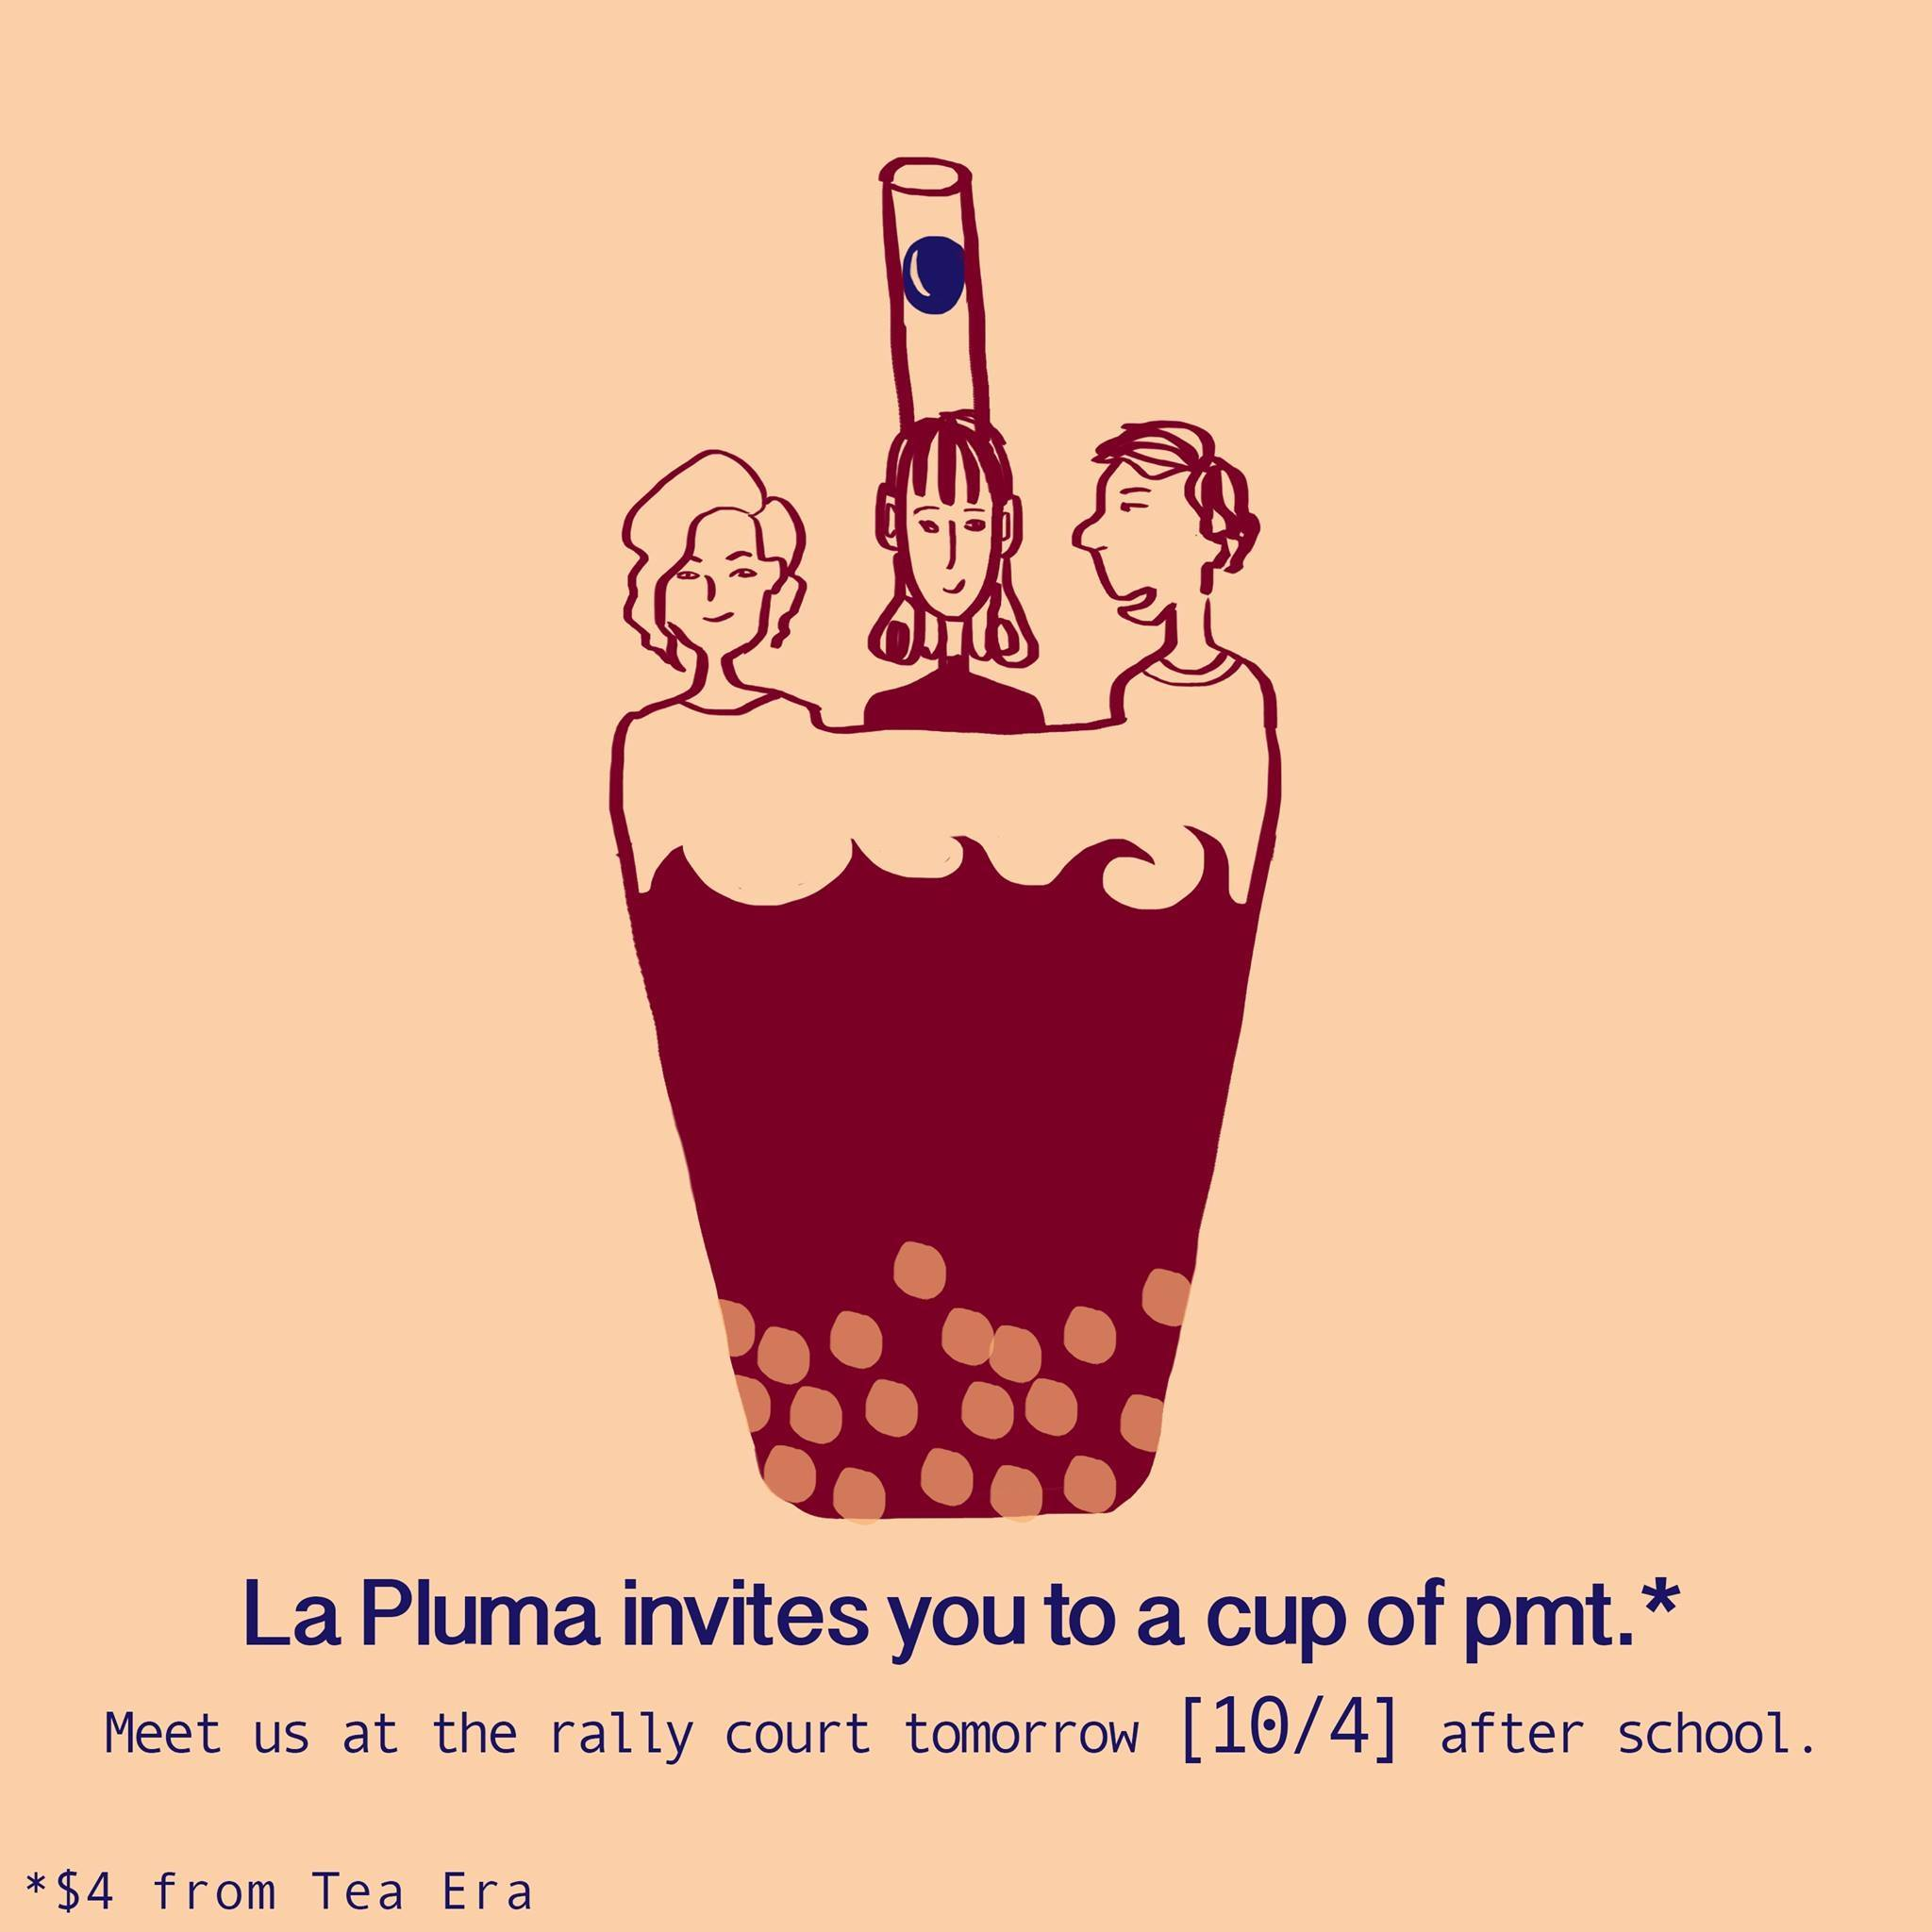 Used with permission from La Pluma La Pluma hopes to continue with more fundraisers for the club. The money raised will go to future SNS magazines.